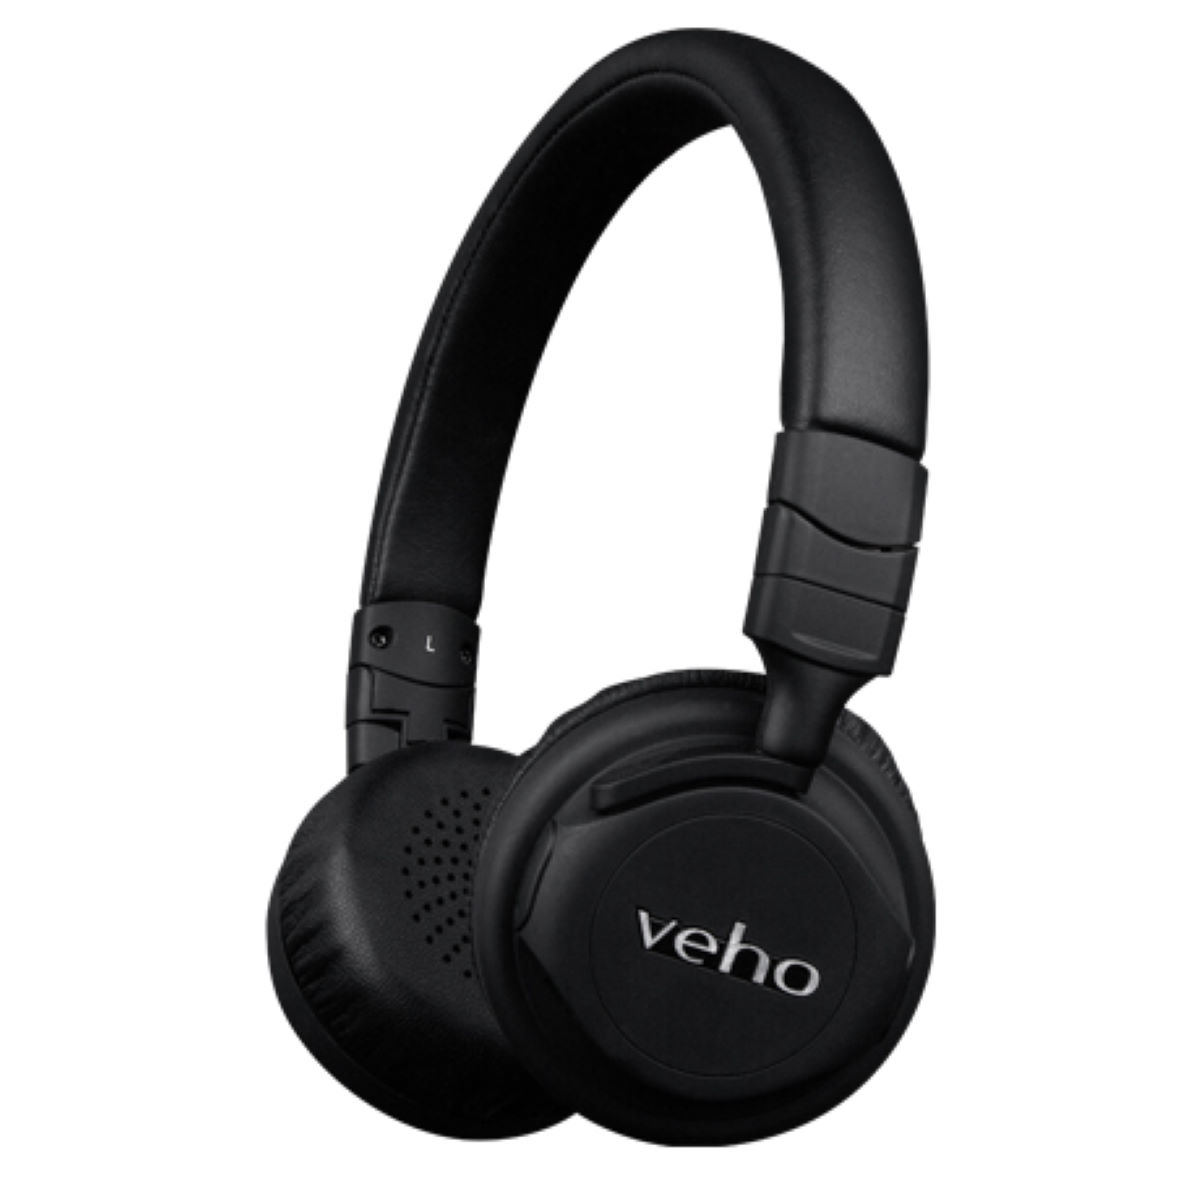 Veho Veho ZB-5 On-Ear Wireless Bluetooth Headphones   Headphones